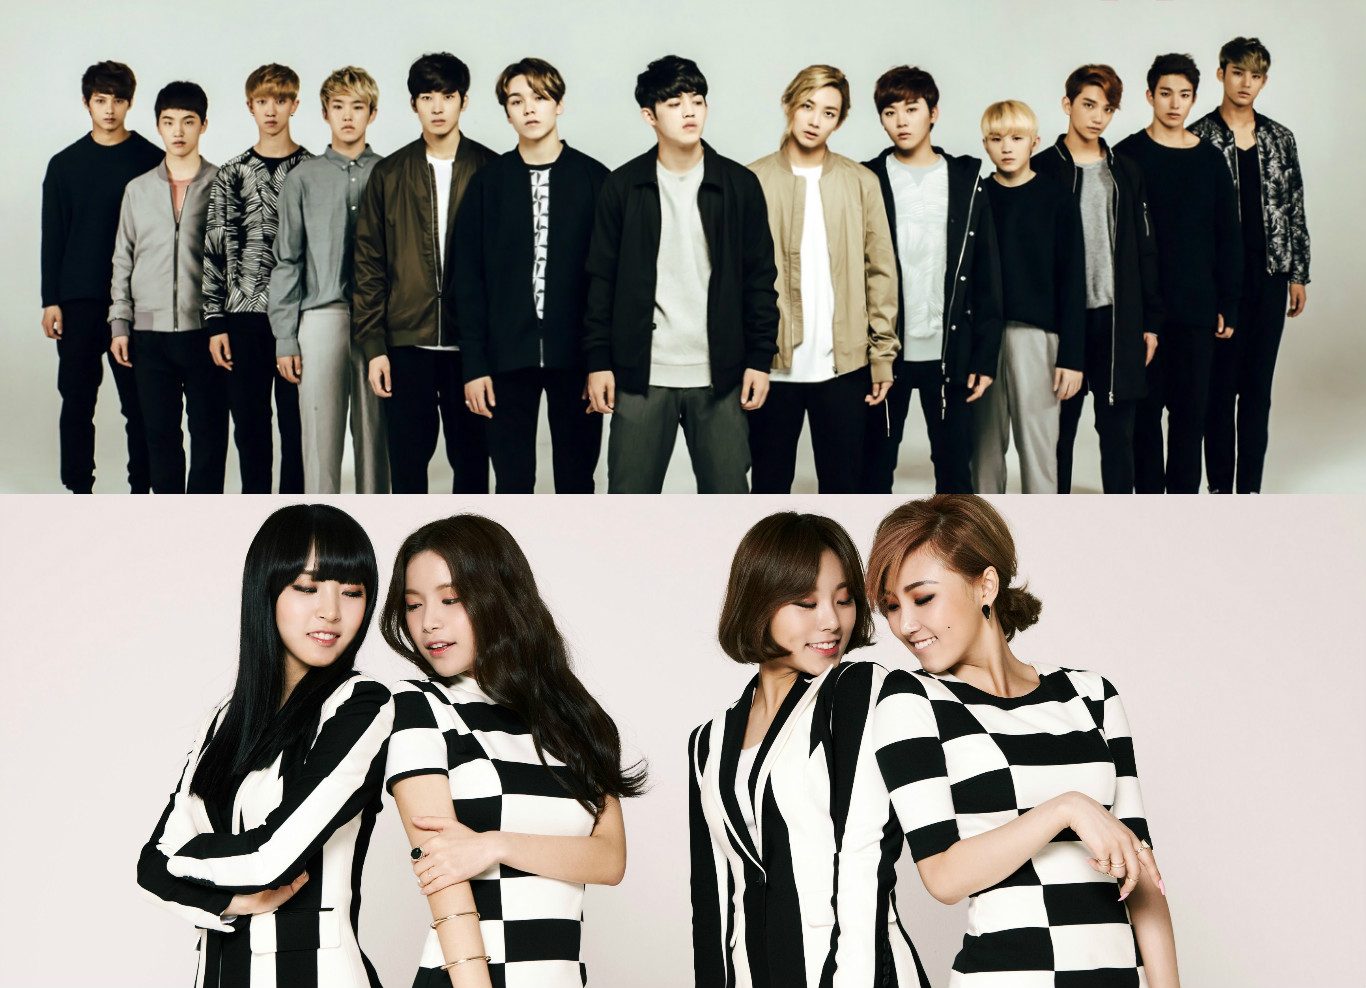 seventeen and mamamoo are the first artists to join the